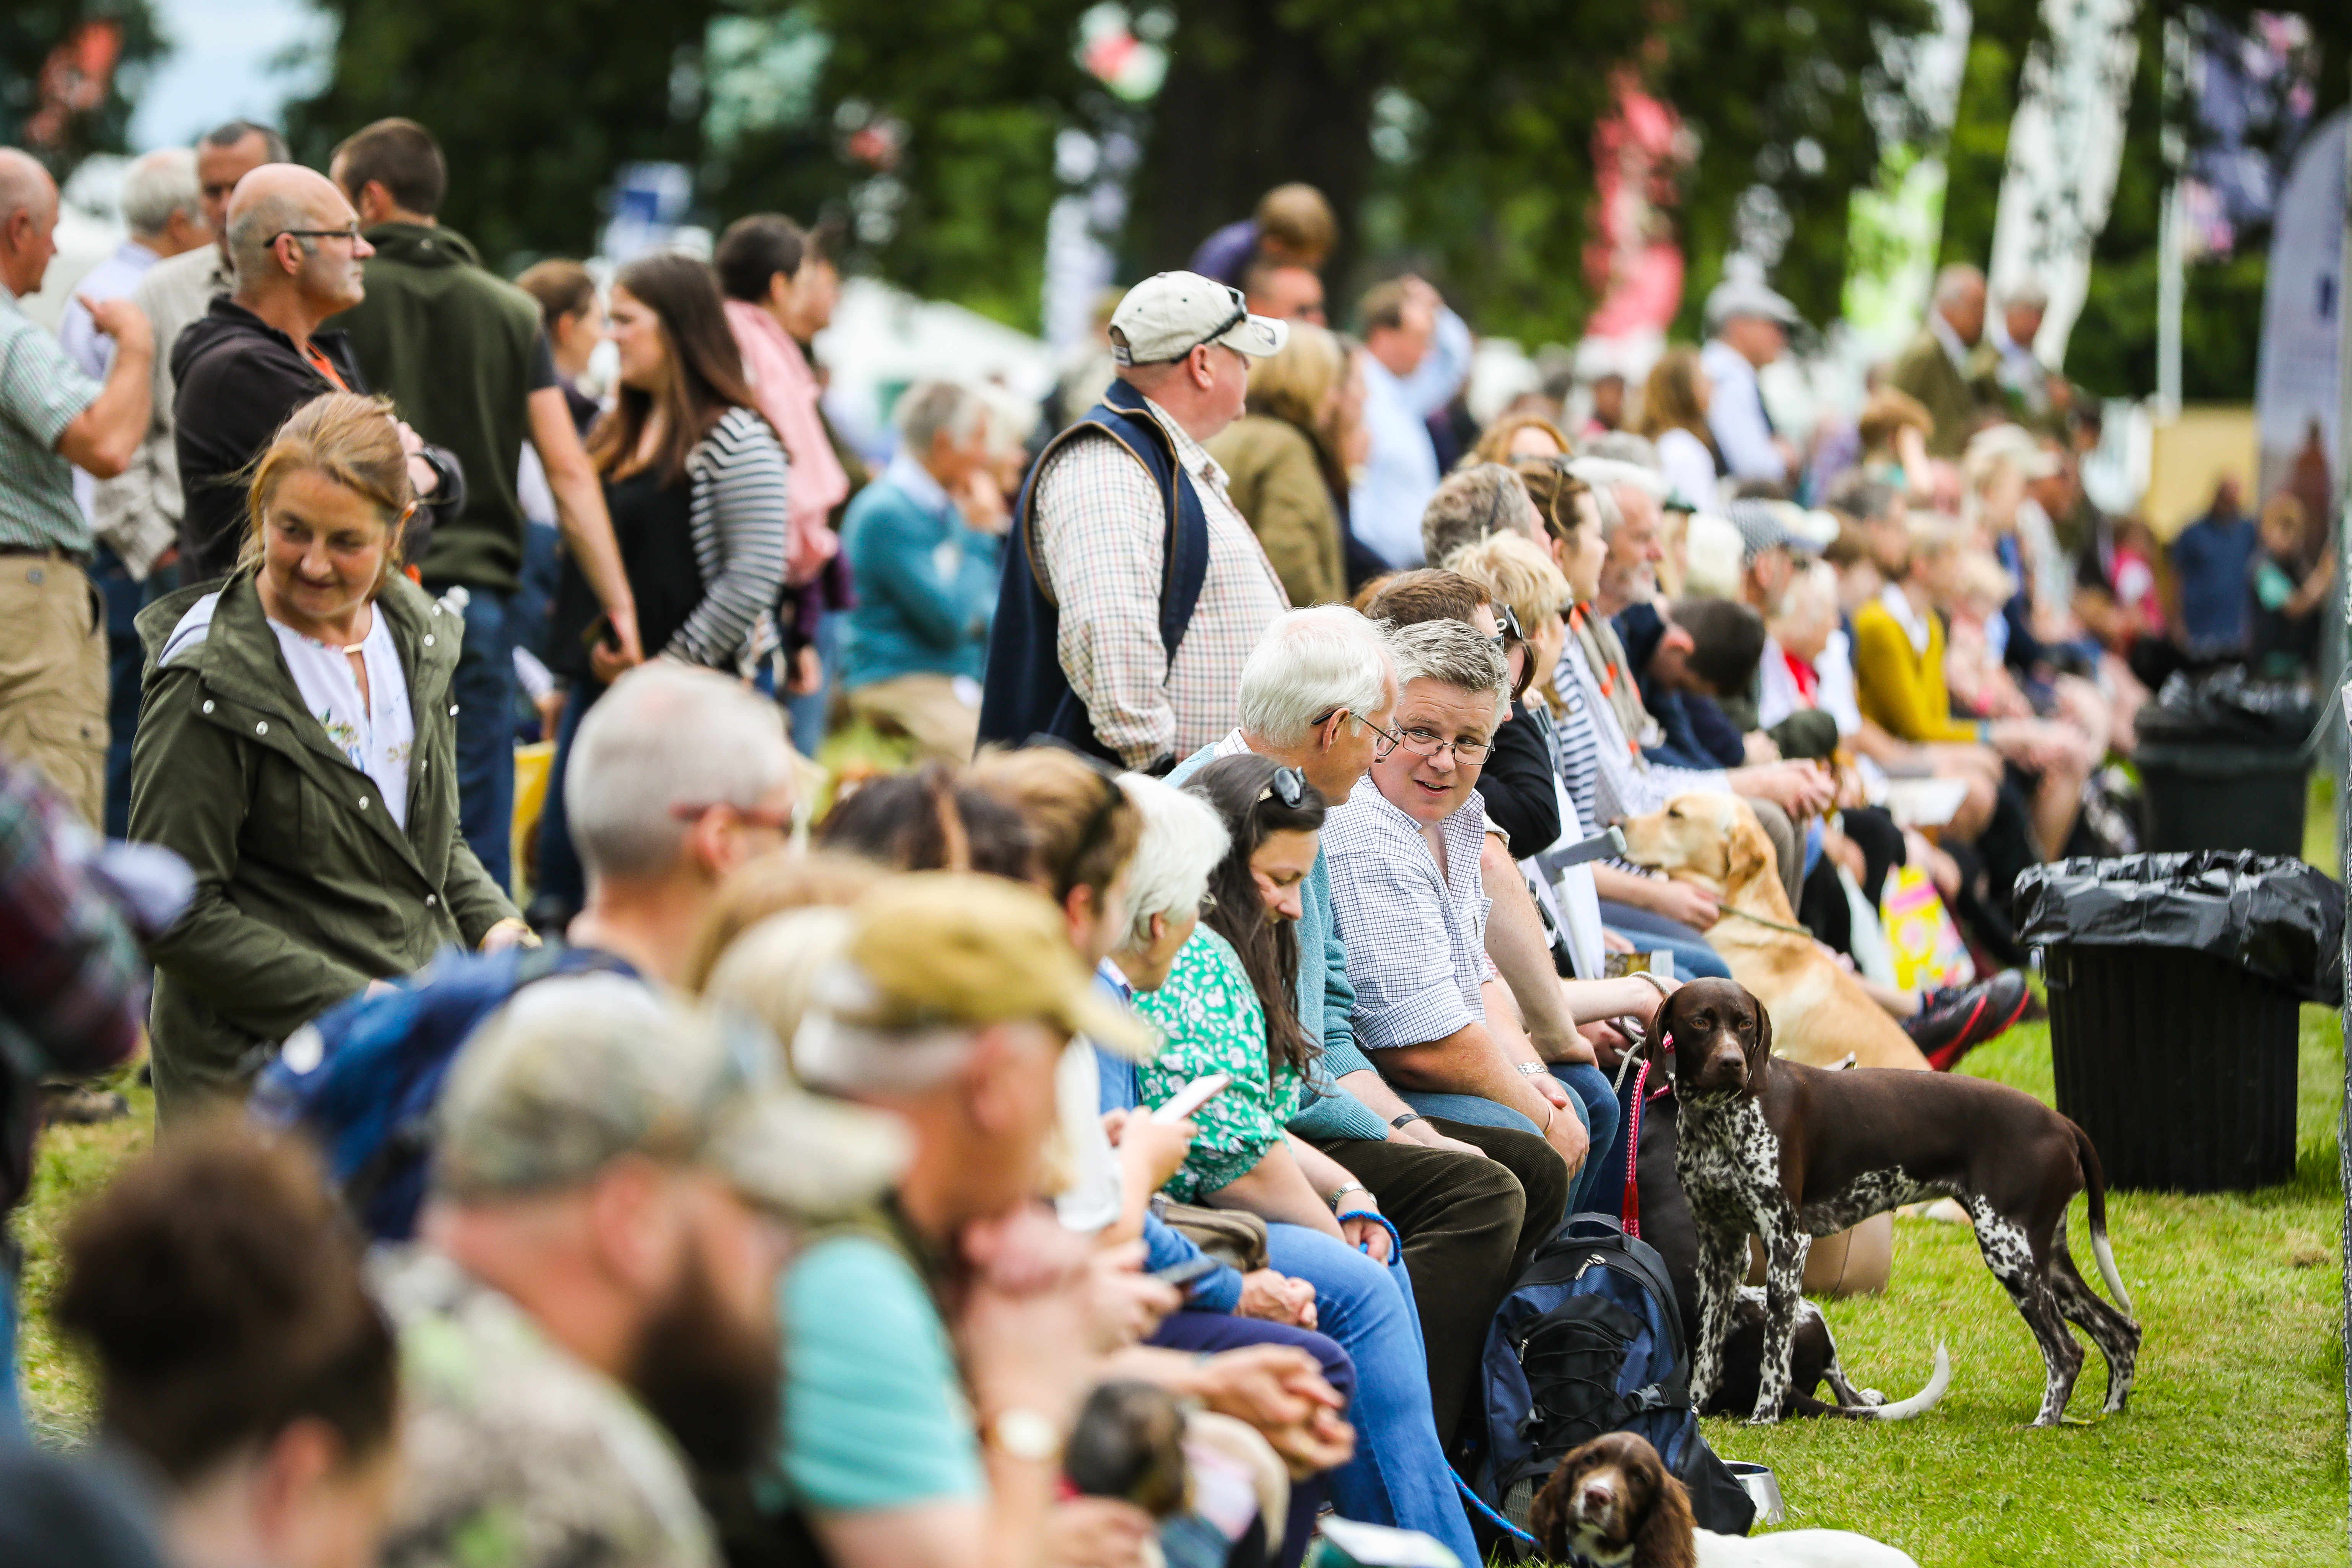 Crowds at the Scottish Game Fair